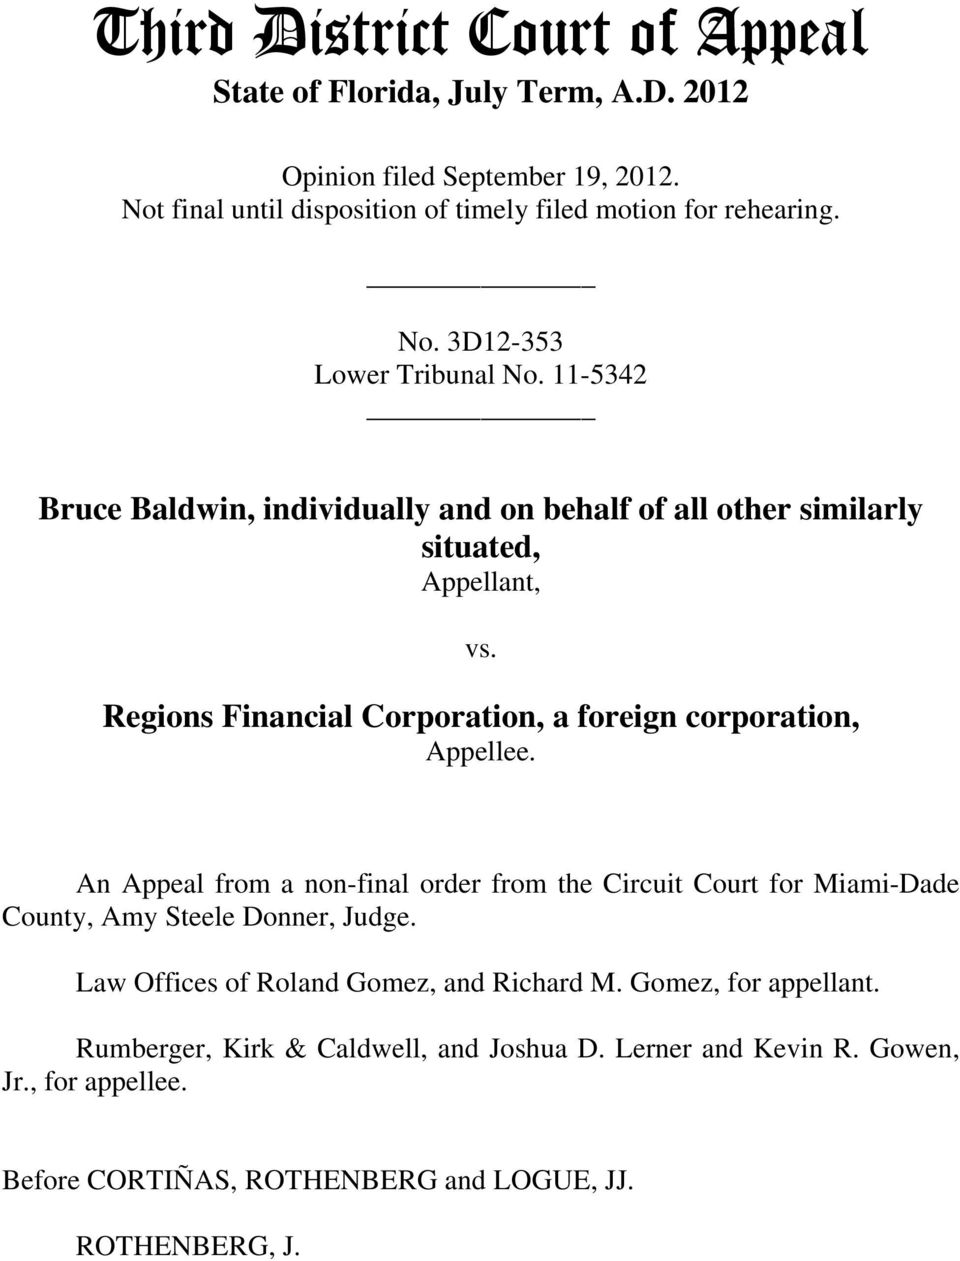 Regions Financial Corporation, a foreign corporation, Appellee. An Appeal from a non-final order from the Circuit Court for Miami-Dade County, Amy Steele Donner, Judge.